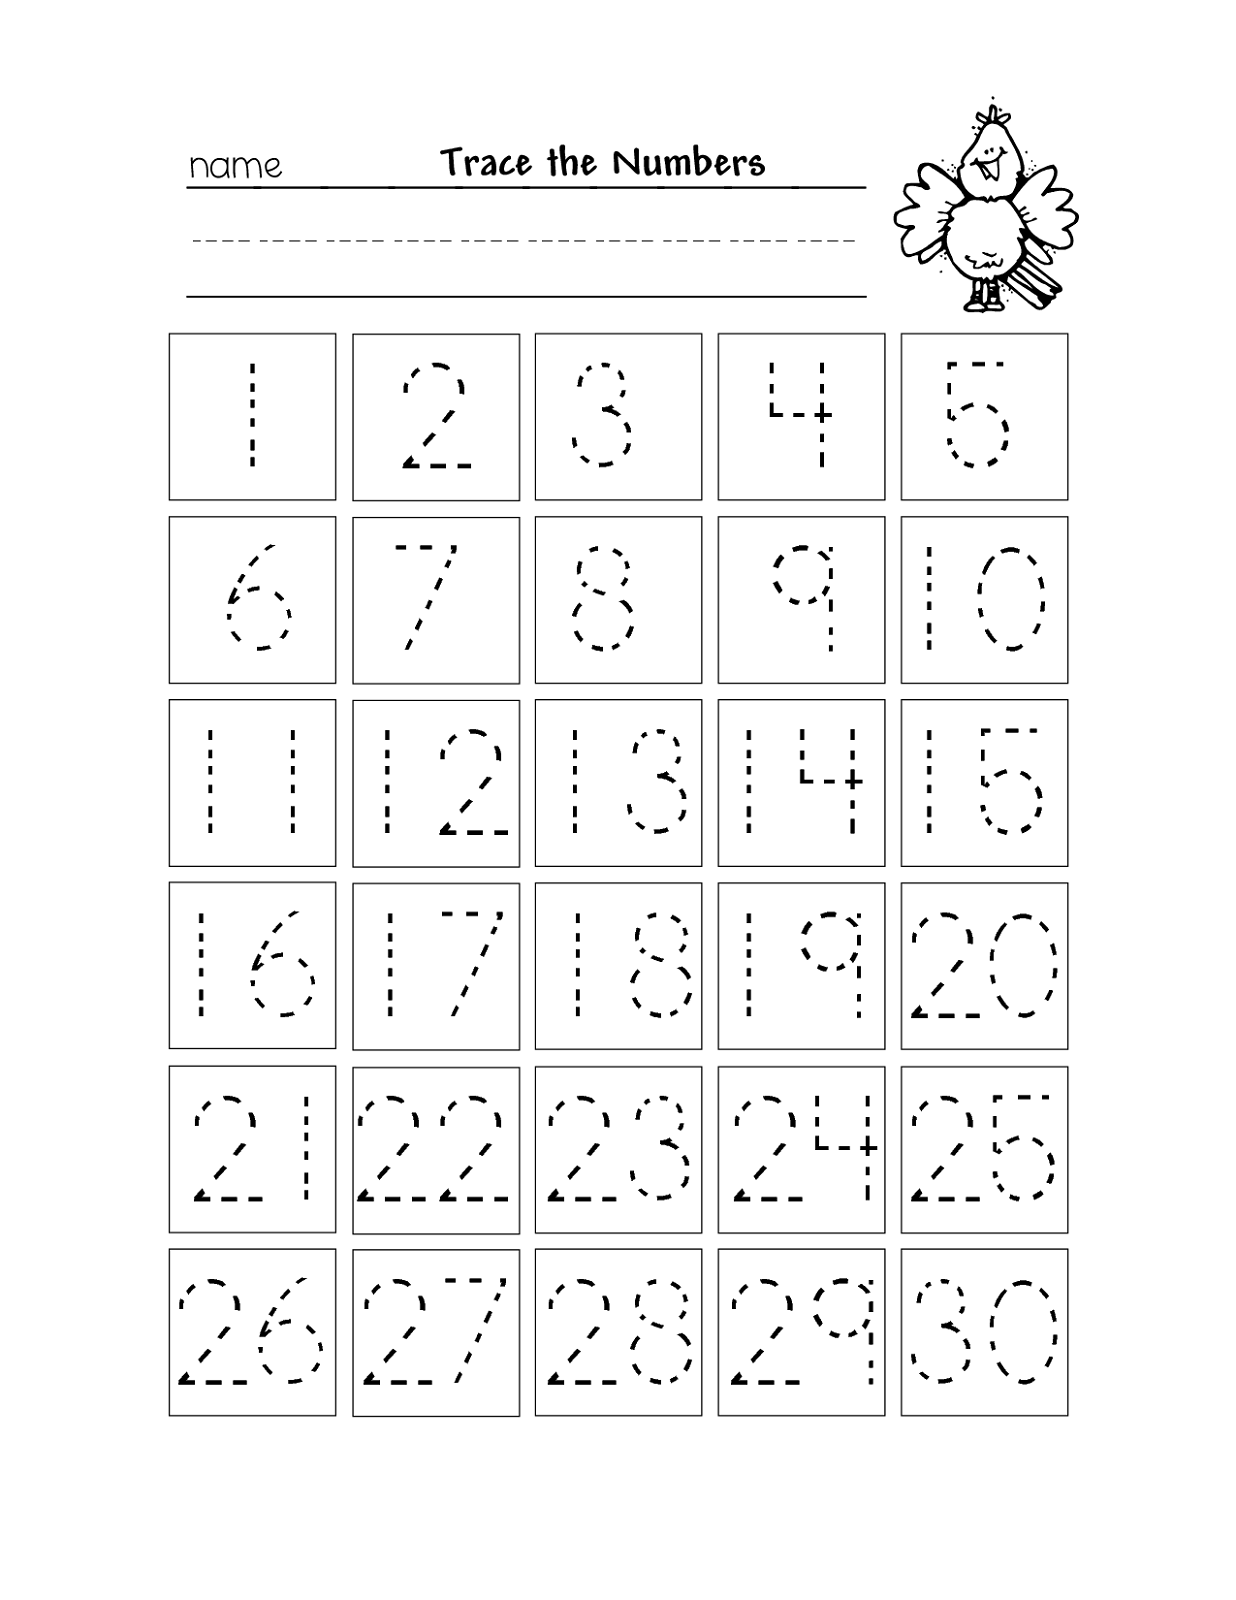 Worksheets Number Tracing Worksheets 1-20 trace the numbers 1 30 kiddo shelter kids worksheets printable shelter